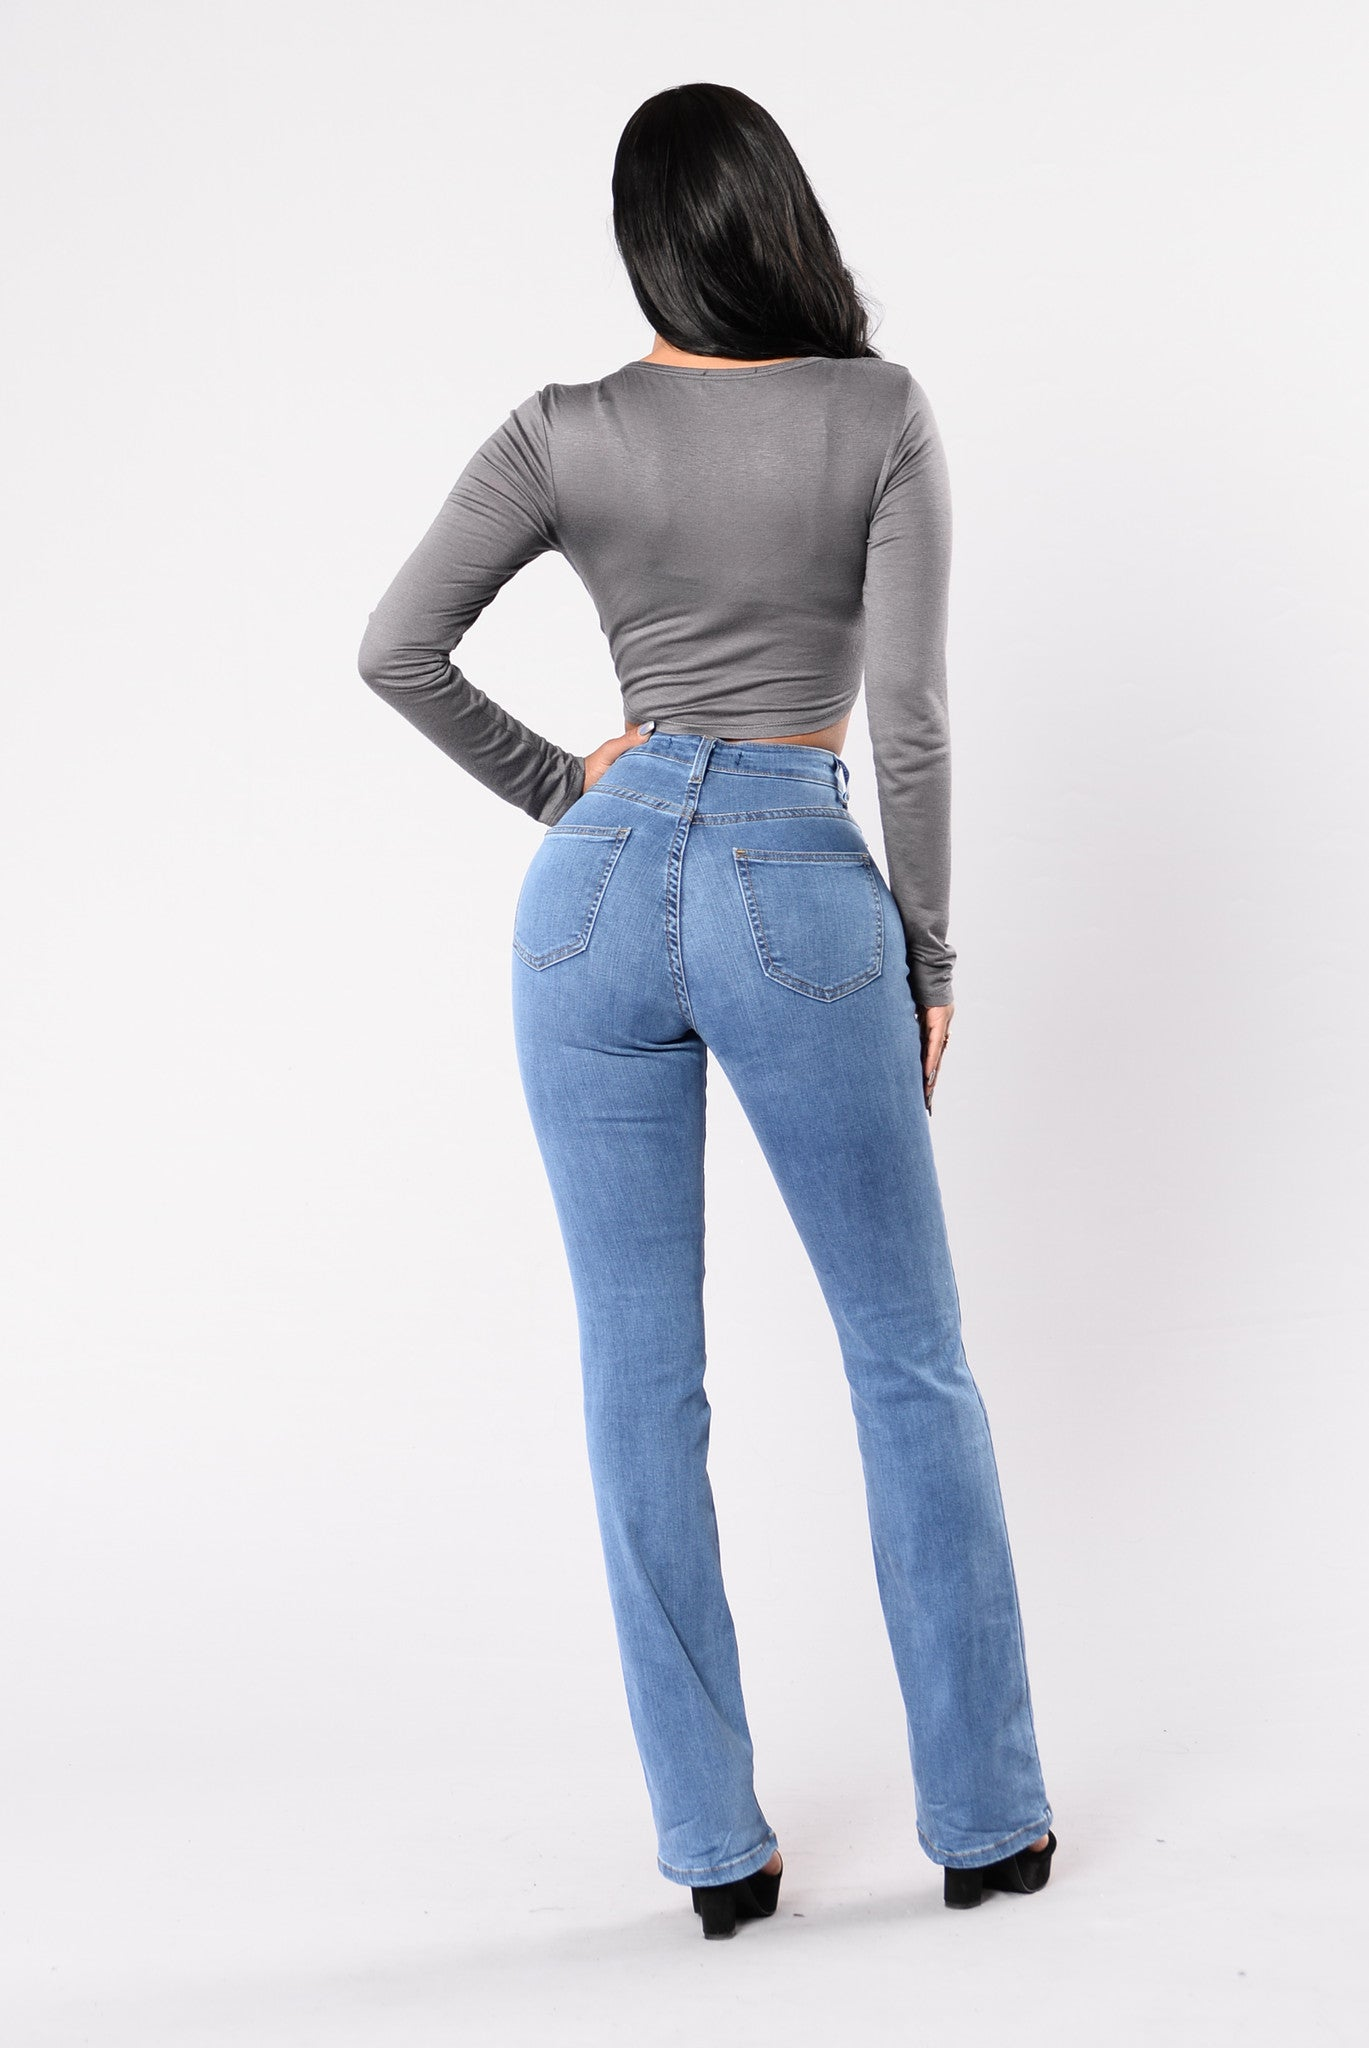 6524d454528 Step Out Of The Box Boot Cut Jeans - Light Stone